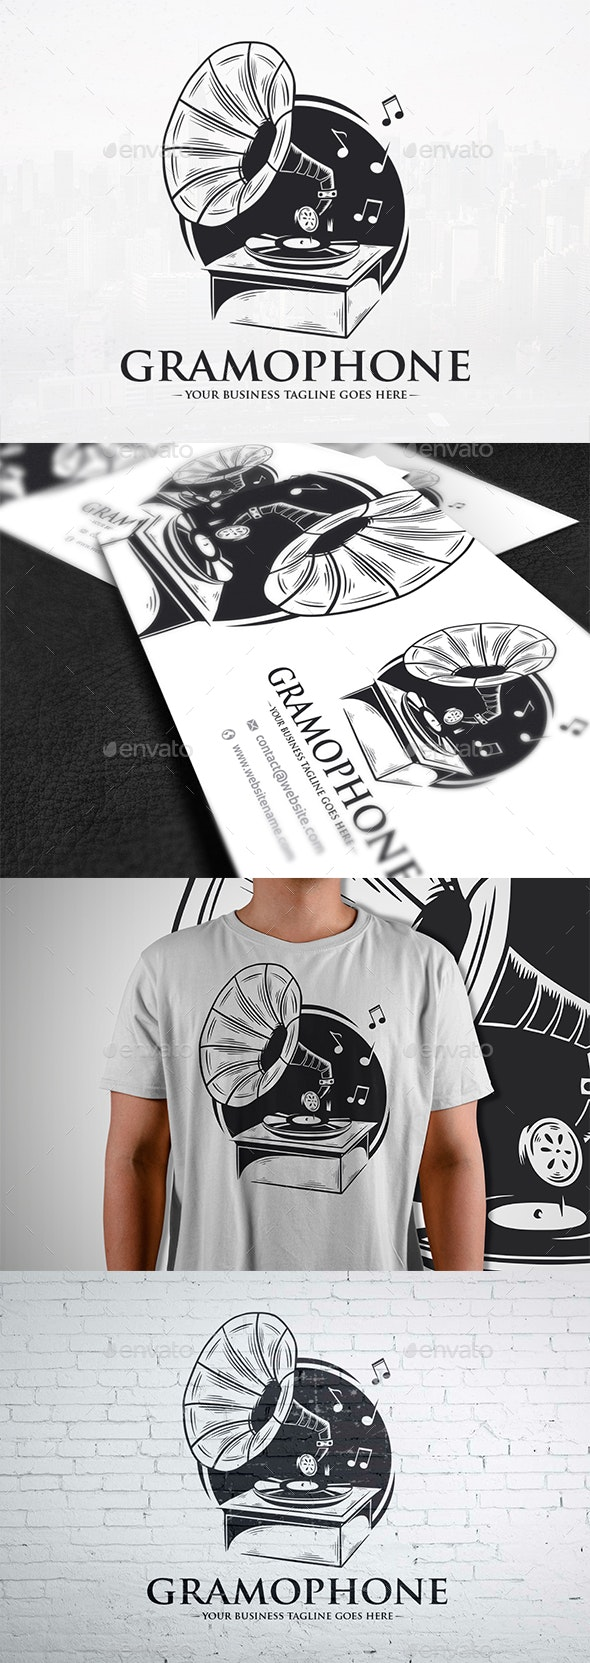 Old Gramophone Logo Template - Objects Logo Templates